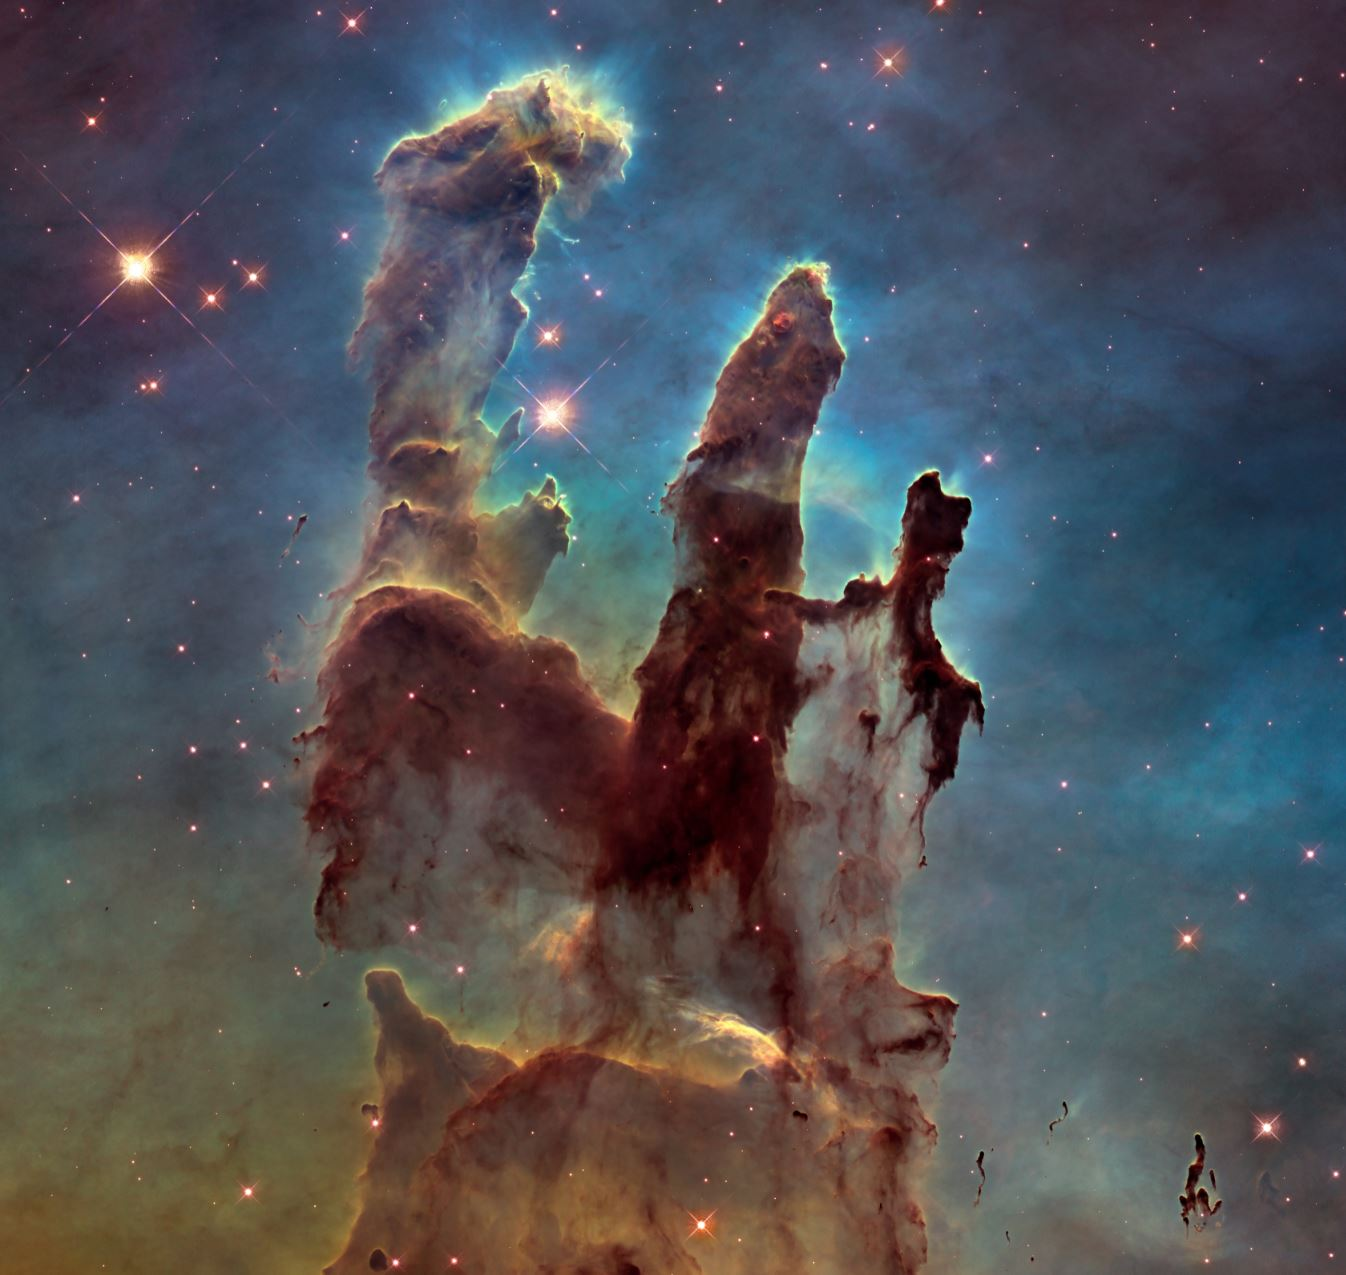 This image of the Pillars of Creation in the Eagle Nebula was captured by the newer WFC3. No staircase! It was taken as a tribute to the original Hubble WFPC2 image, but this one is much higher resolution thanks to the updated technology.- Image Credit:  NASA, ESA, and the Hubble Heritage Team (STScI/AURA) via Wikimedia Commons